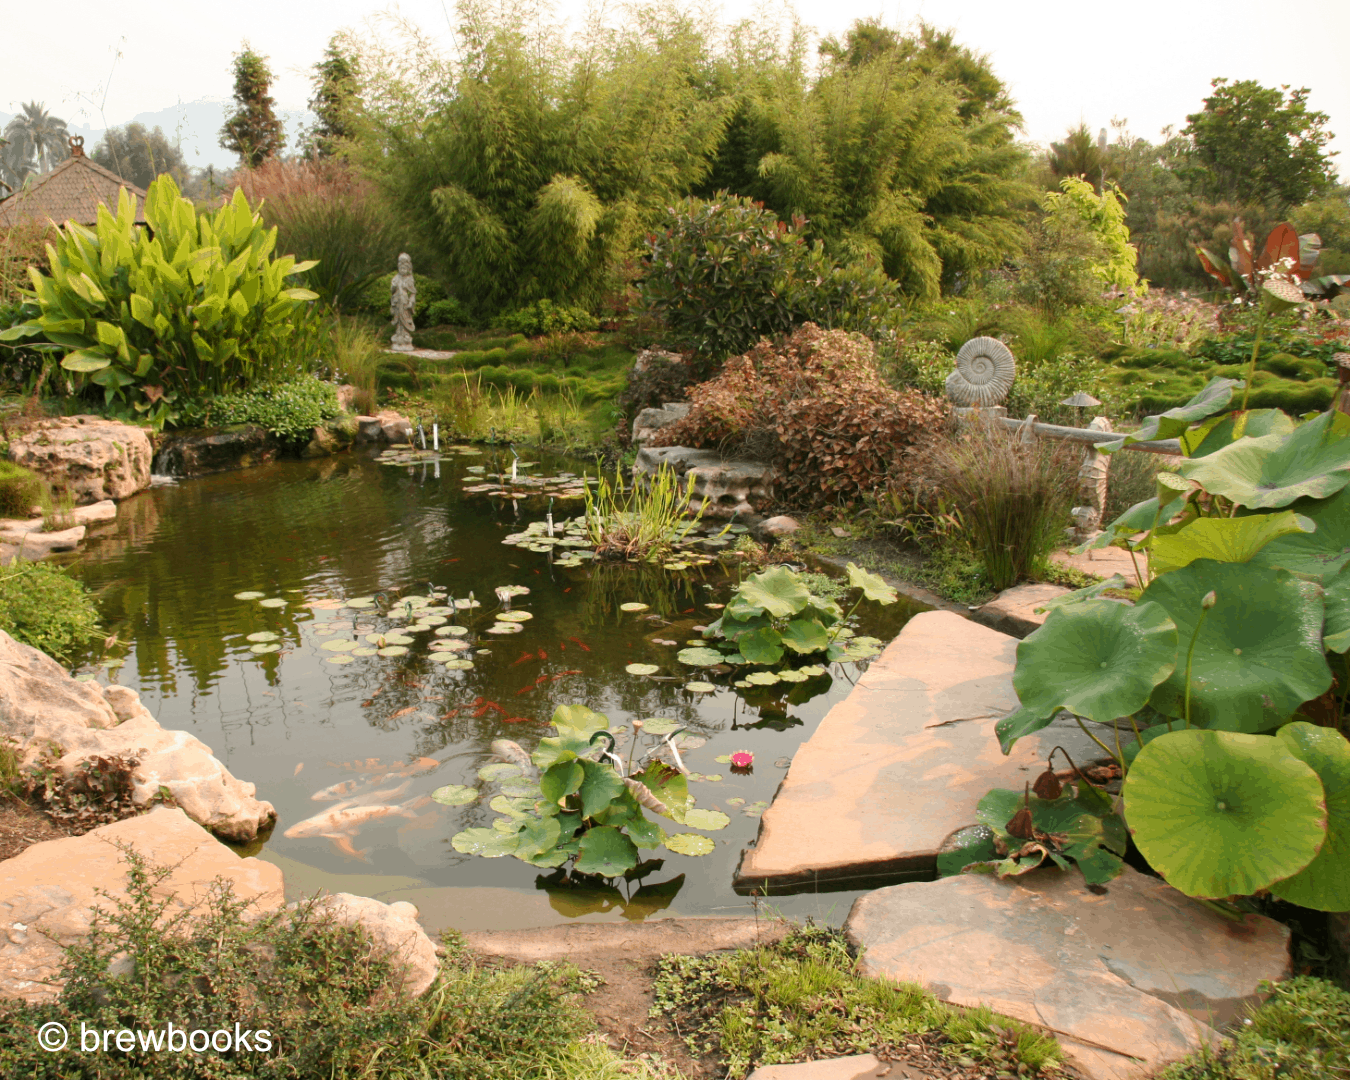 Photo of a garden design pond with aquatic landscaping. There are koi fish and many types of aquatic plants in the garden, including lotus. Photo by brewbooks.